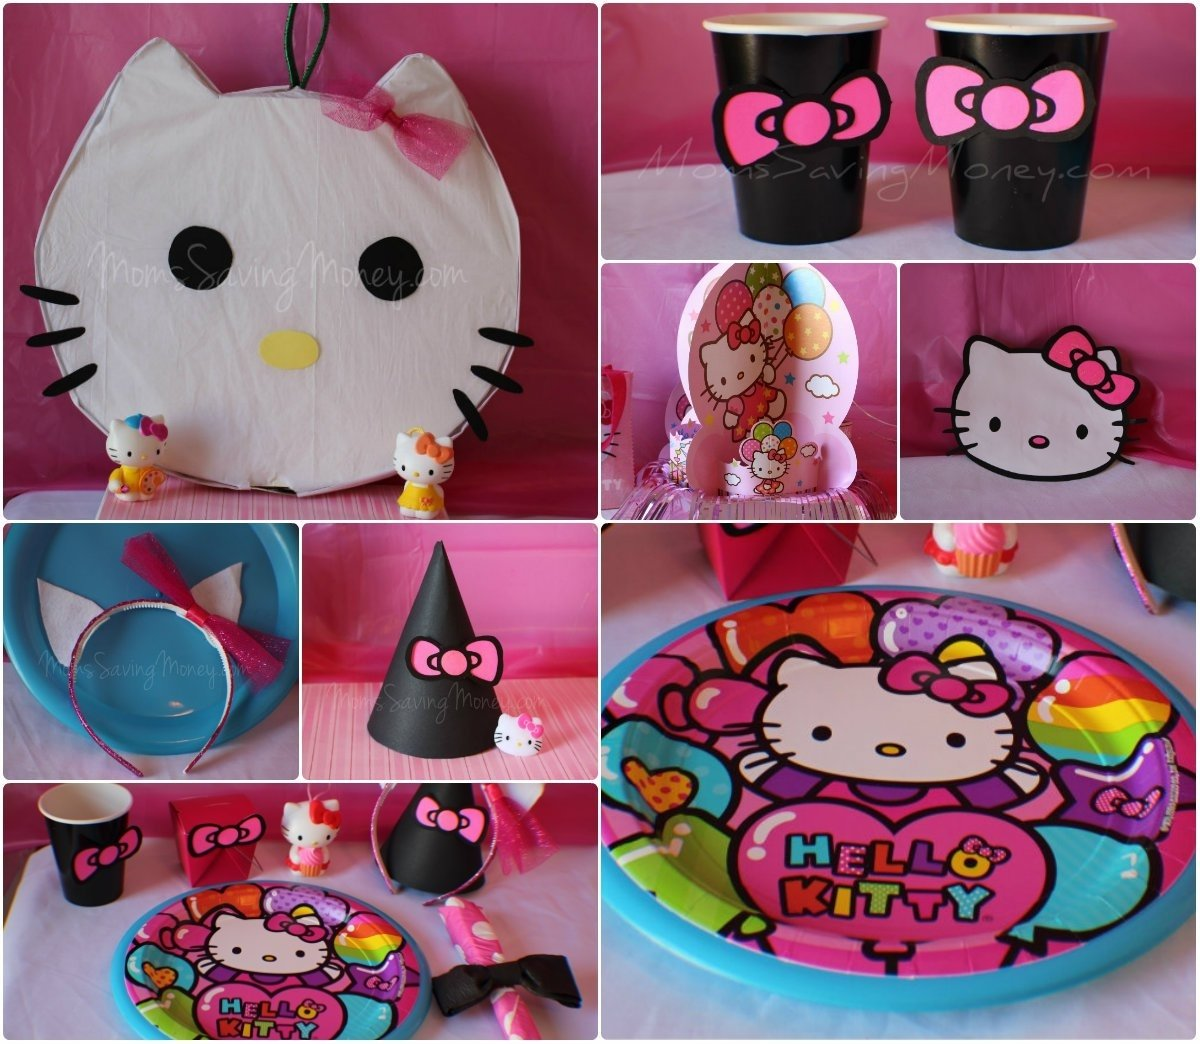 10 Unique Hello Kitty Party Decoration Ideas hello kitty party ideas rebecca autry creations 2 2021